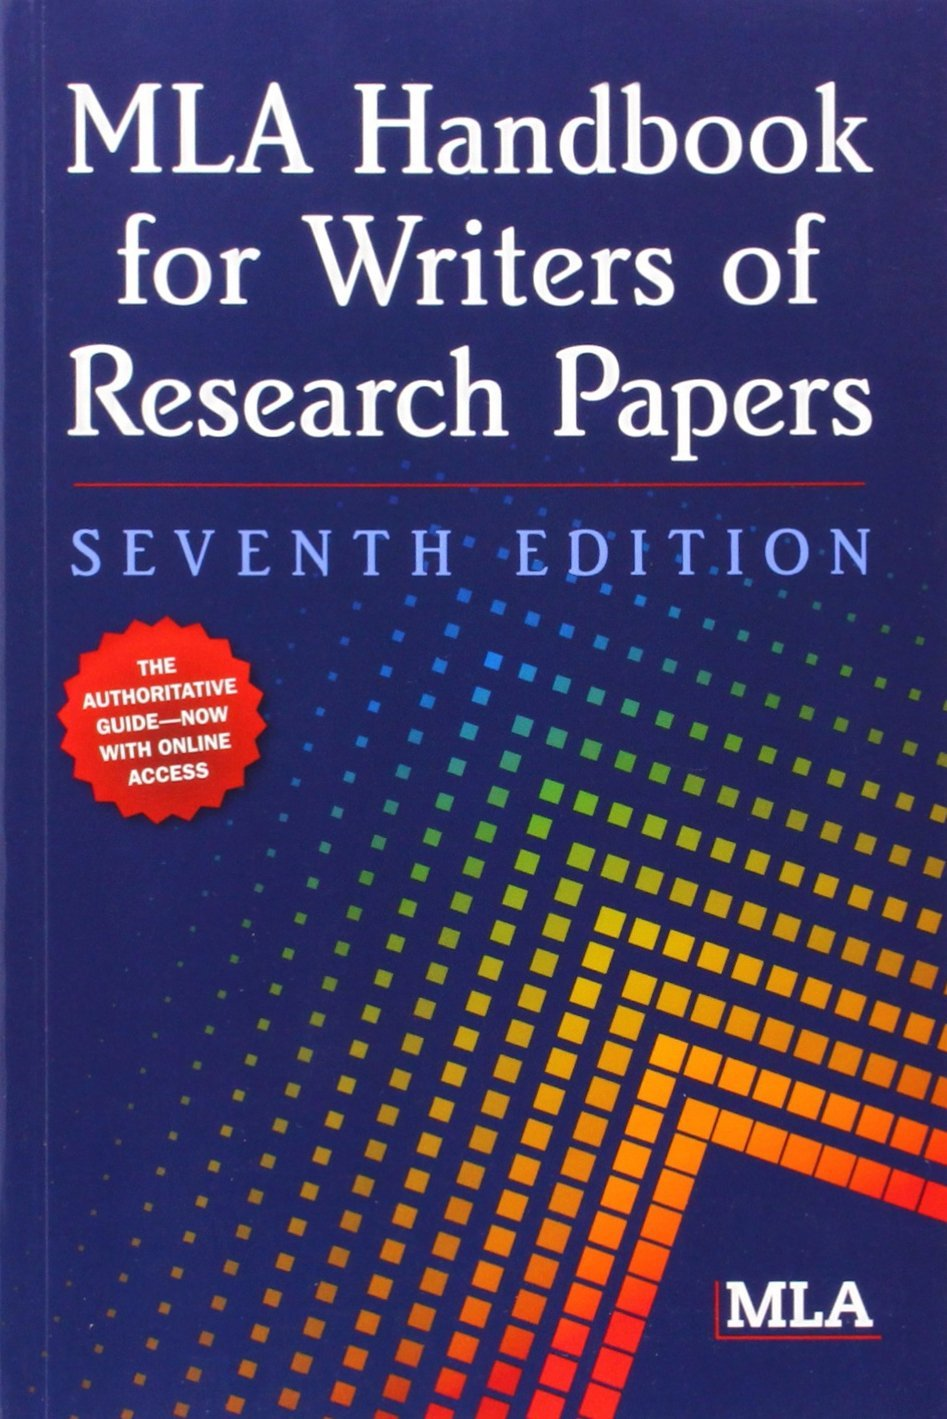 001 Mla Handbook For Writers Of Research Papers 7th Edition Paper Fearsome Pdf Free 2009 Summary Full